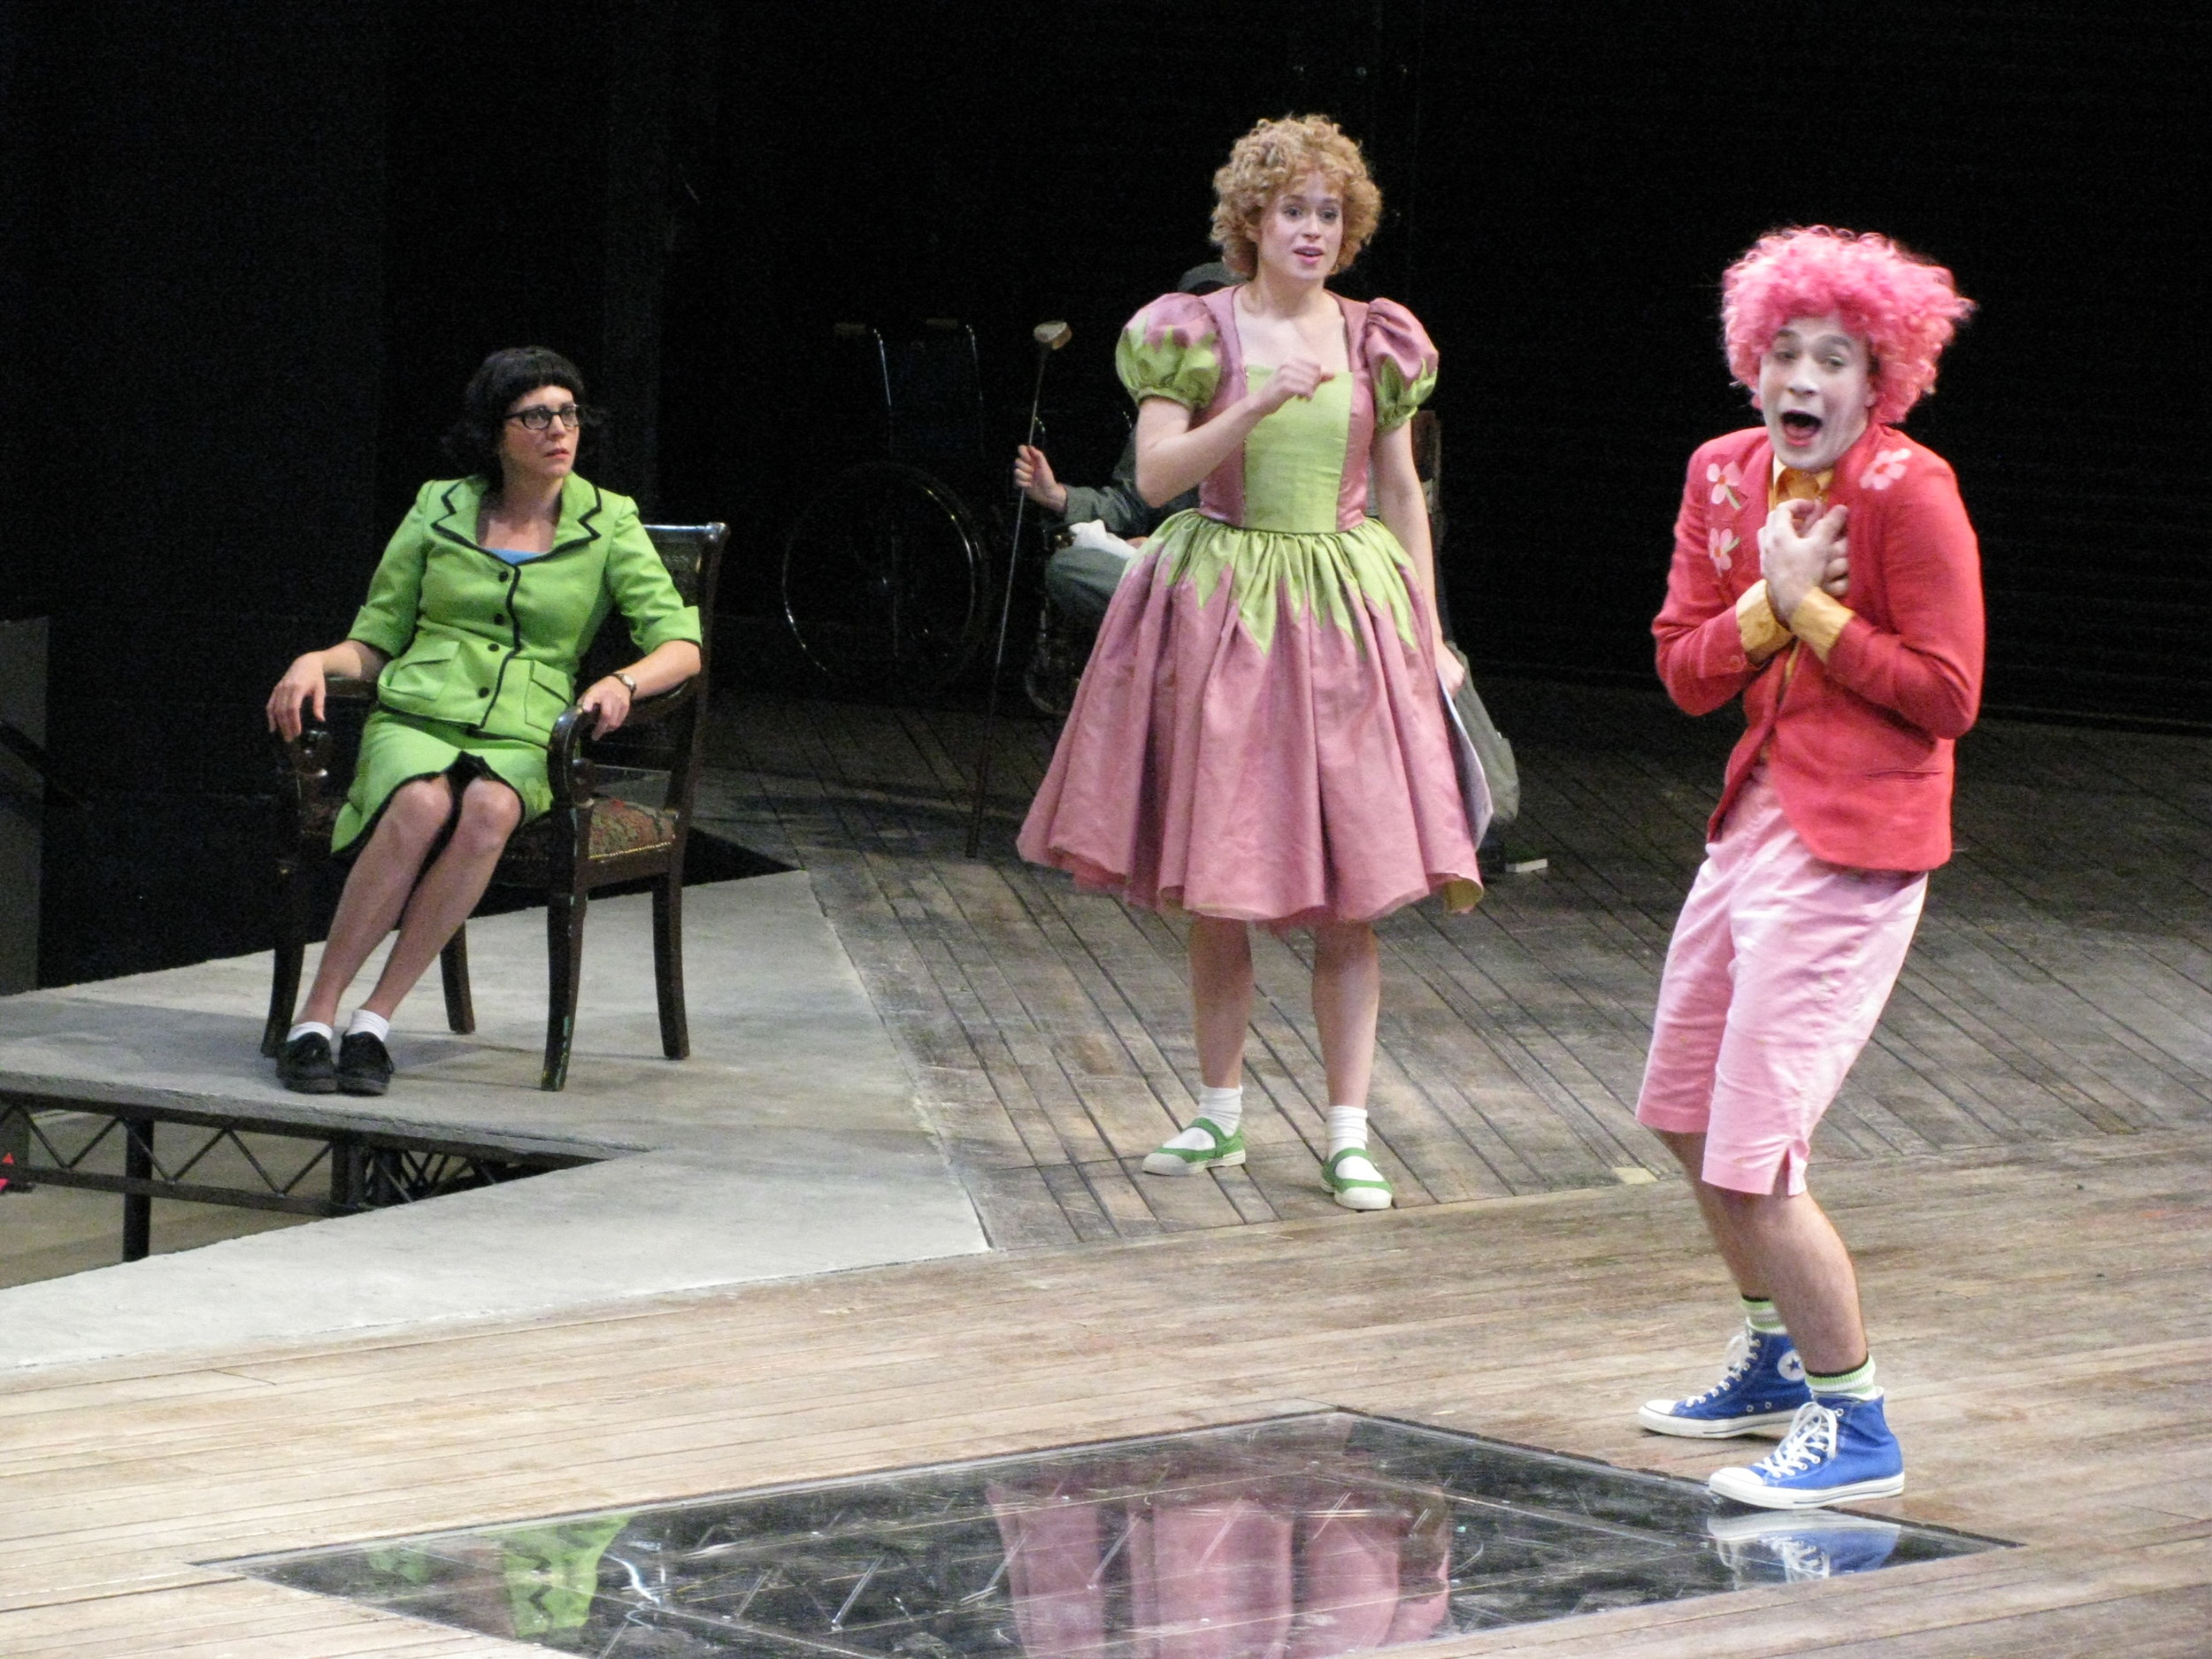 molly-ward-as-toinette-katie-paxton-as-little-angel-jos-tobin-as-irving-luigi_11103253034_o.jpg